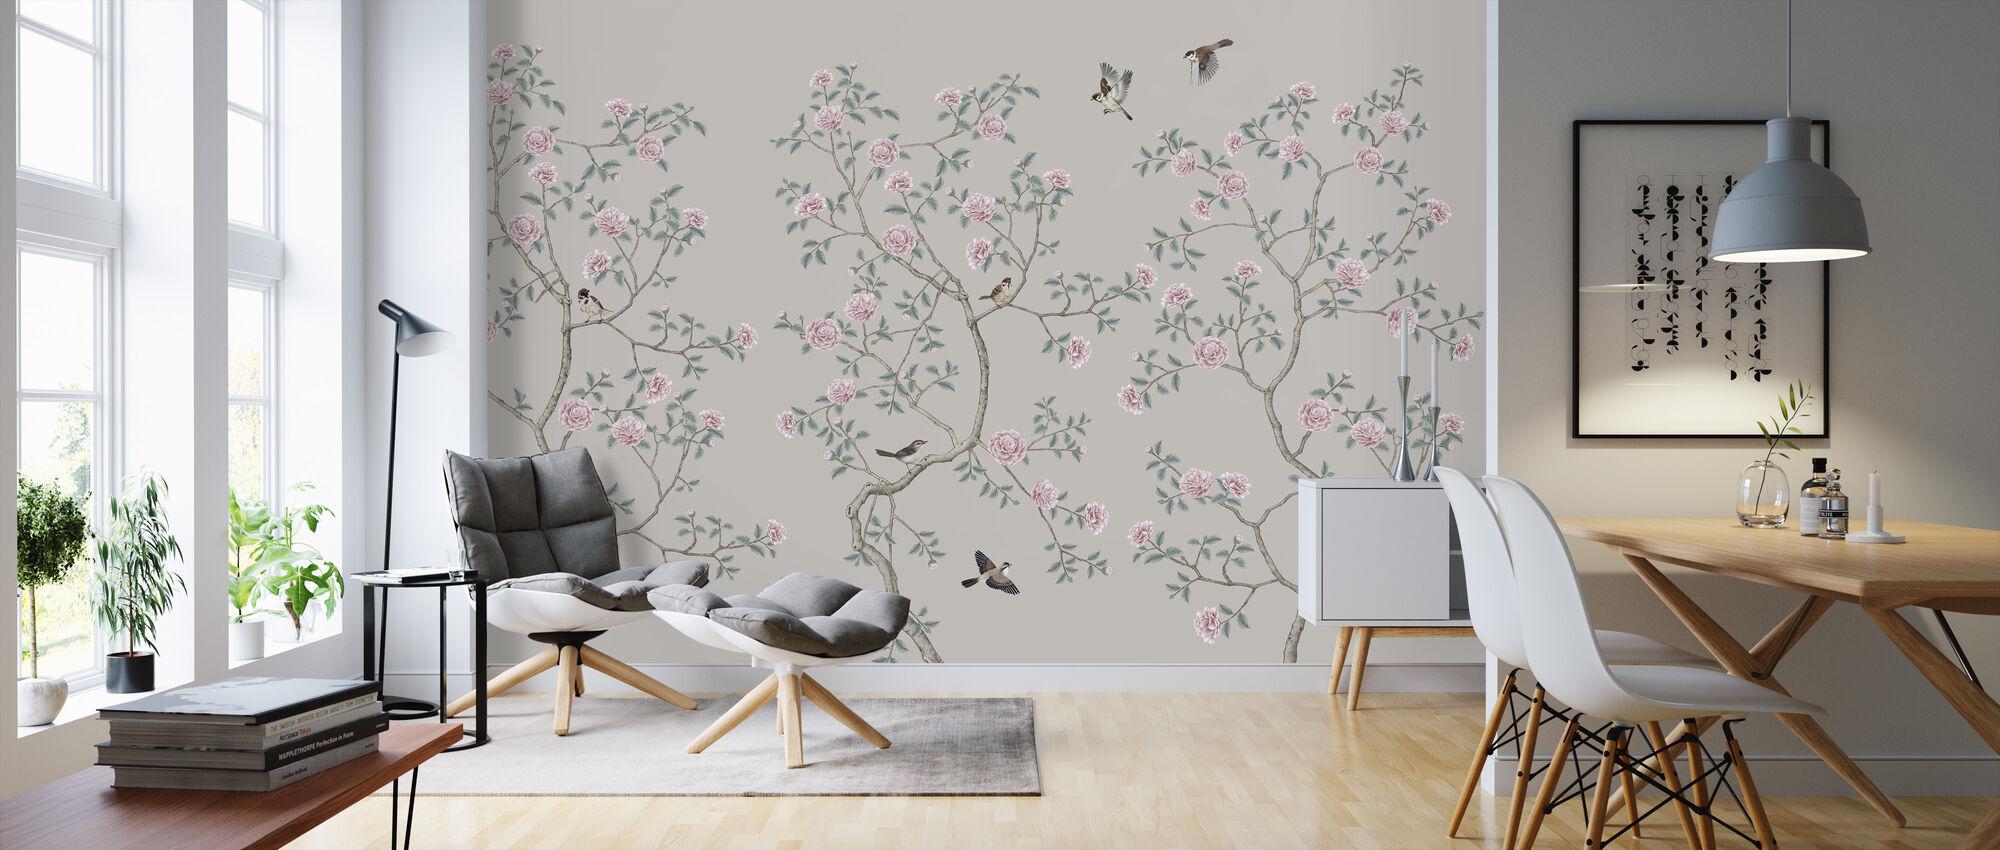 Flowering Chinoiserie Birds - Pearly - Wallpaper - Living Room